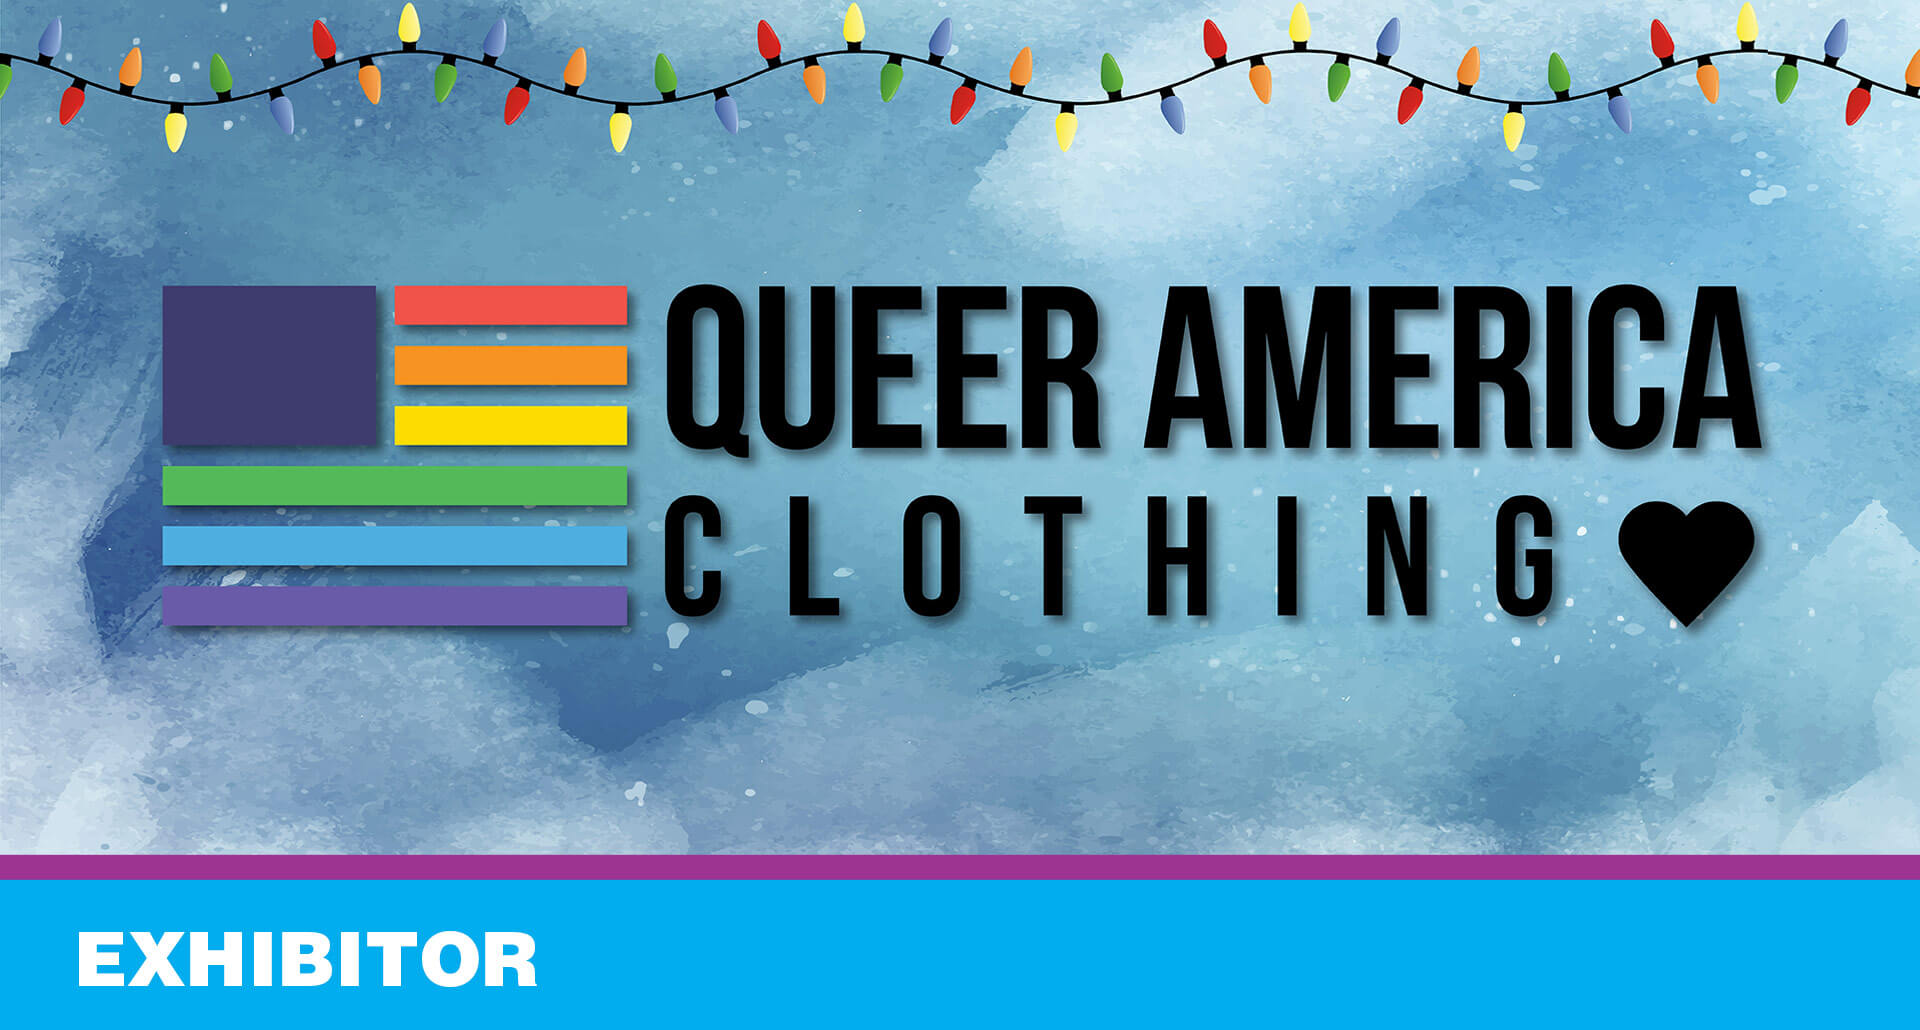 Queer America Clothing